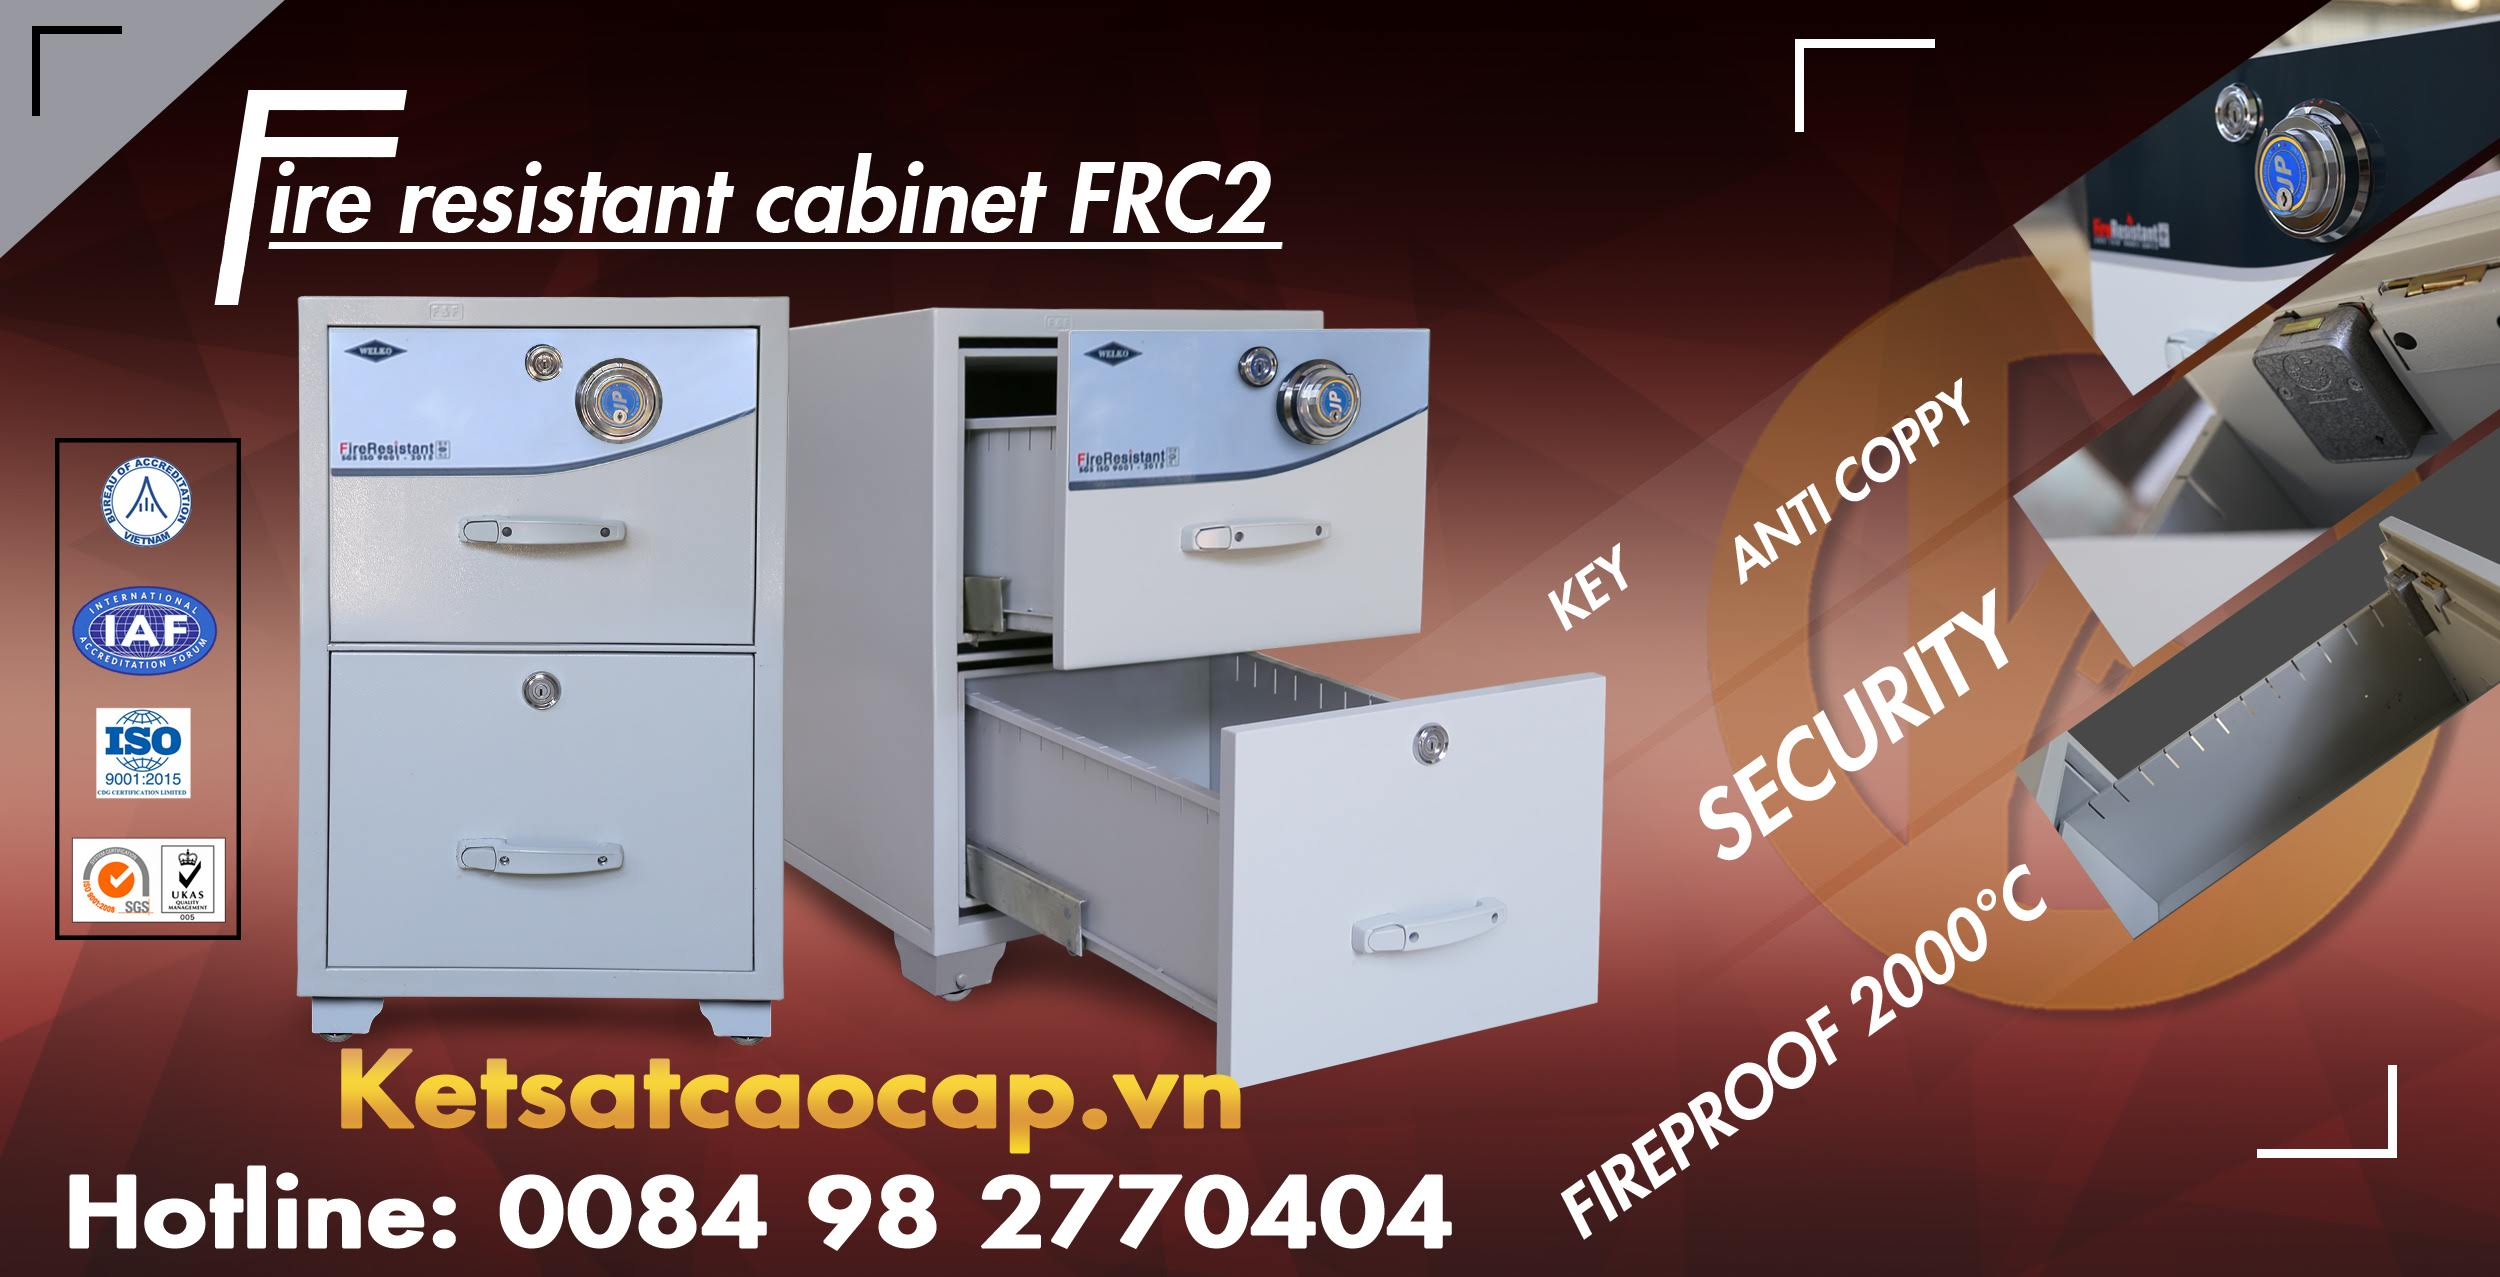 Dia chi ban tu ho so van phong ha noi WELKO Safes Fire Resistant Cabinet uy tin